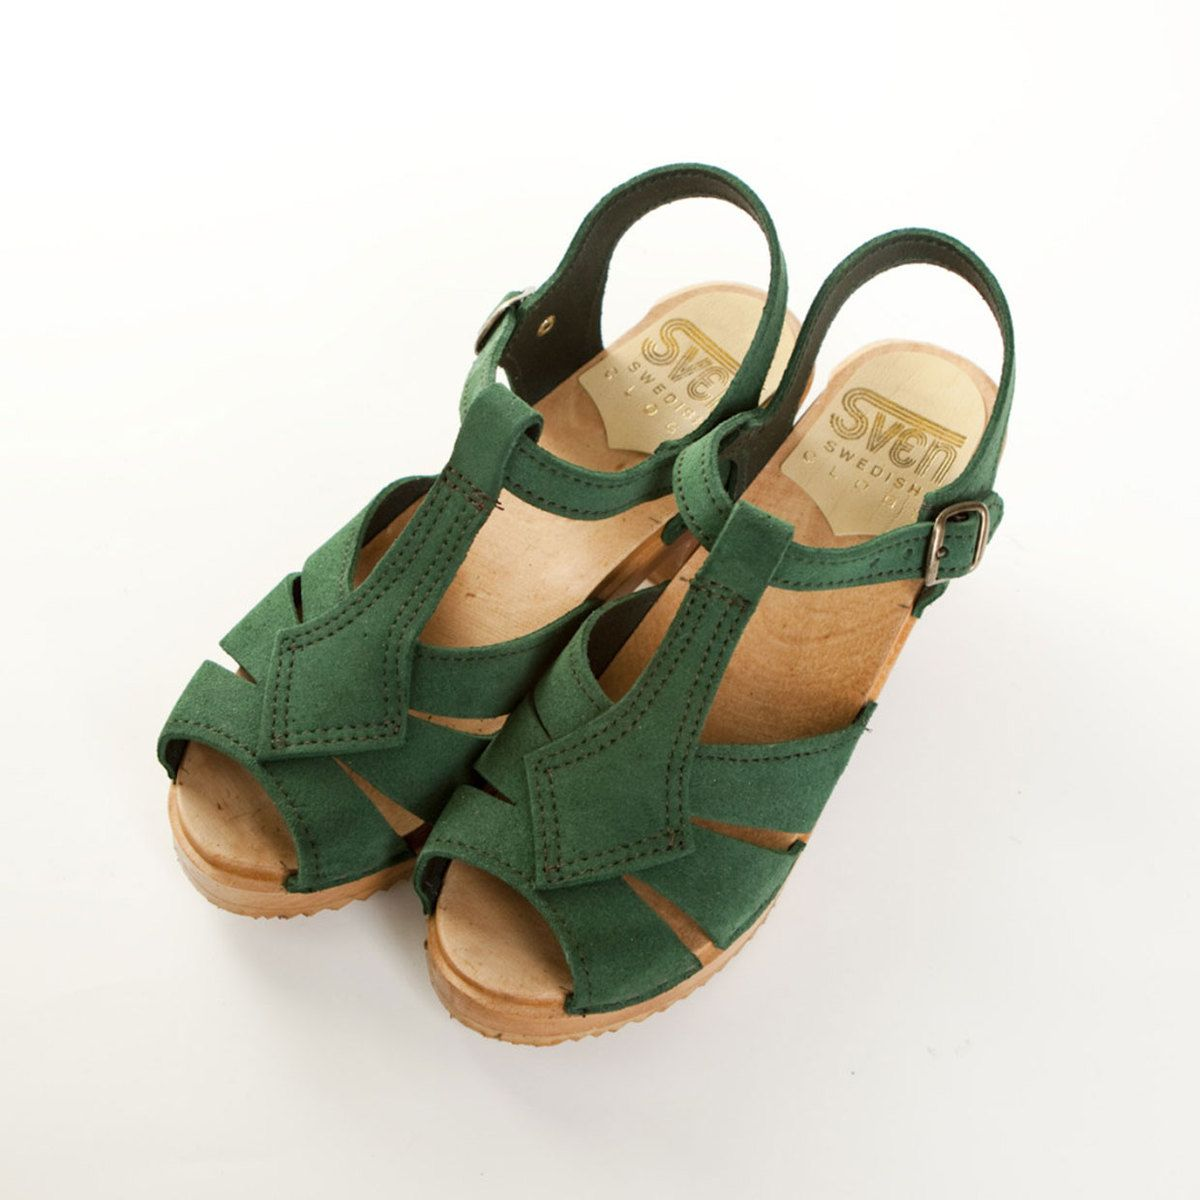 n.d.c. marine petronille sandal – Lost & Found | s k o r